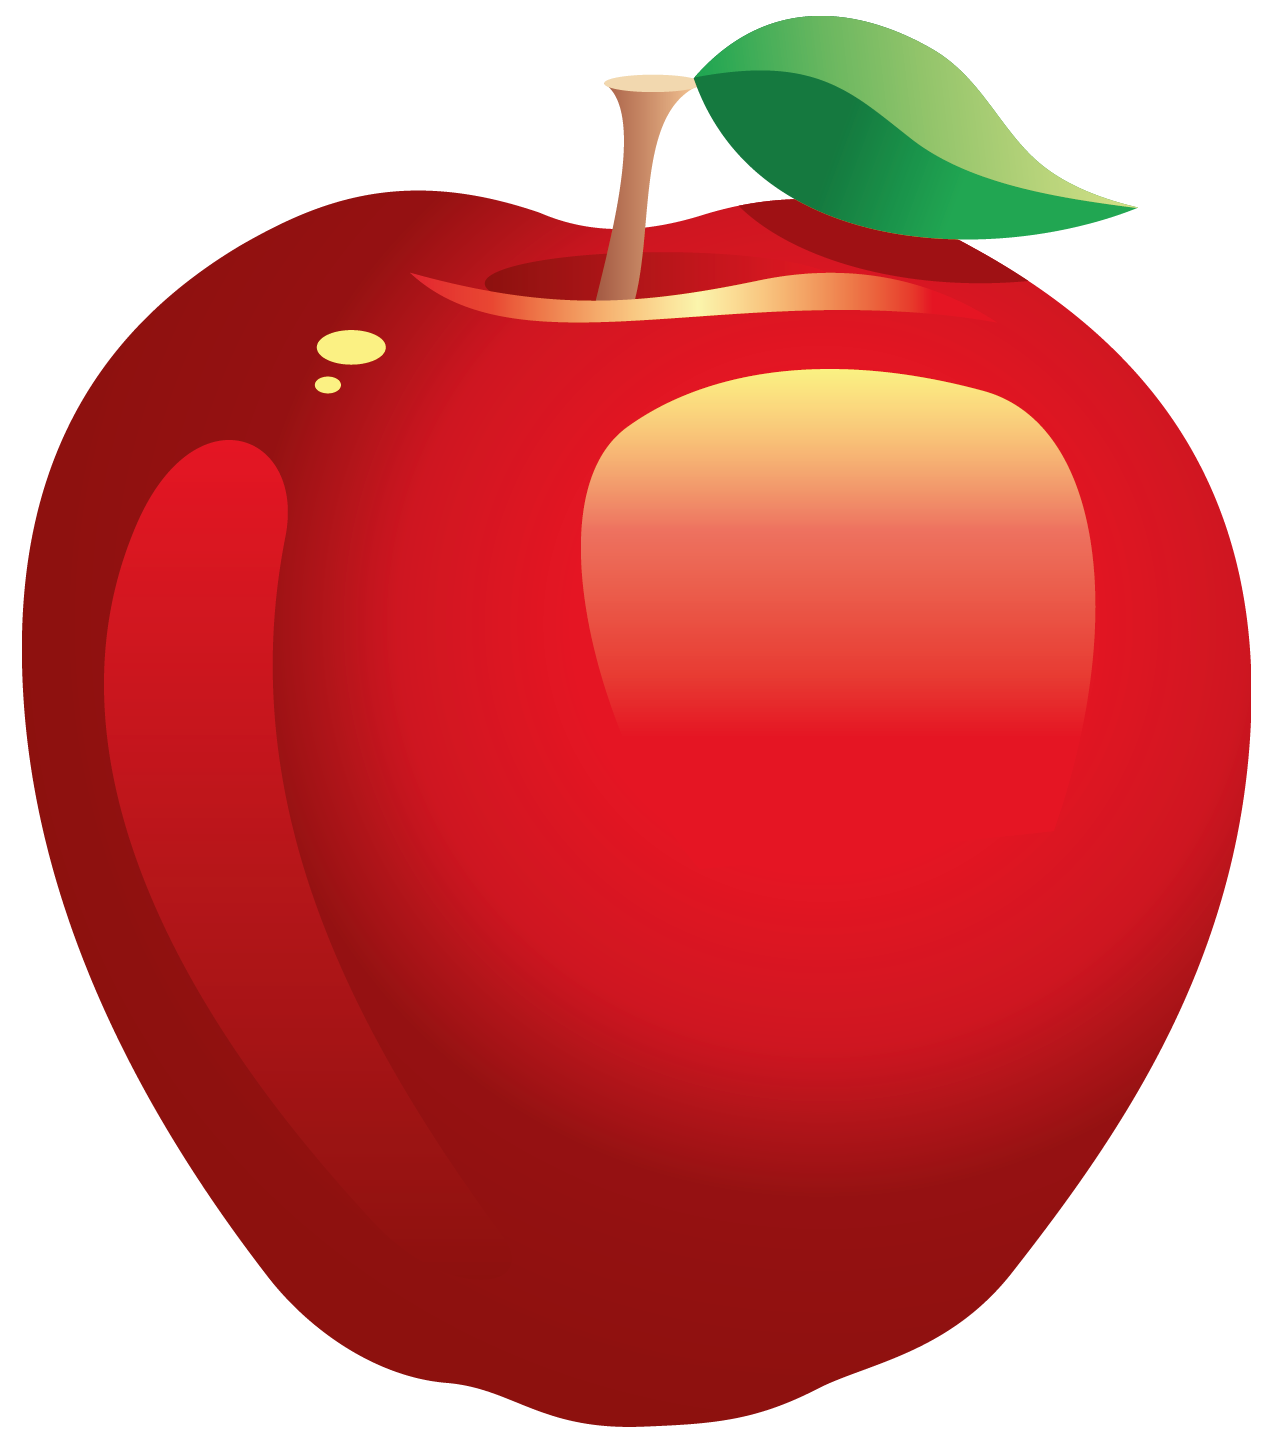 Large apple clipart image transparent download Large Painted Red Apple PNG Clipart | Gallery Yopriceville - High ... image transparent download